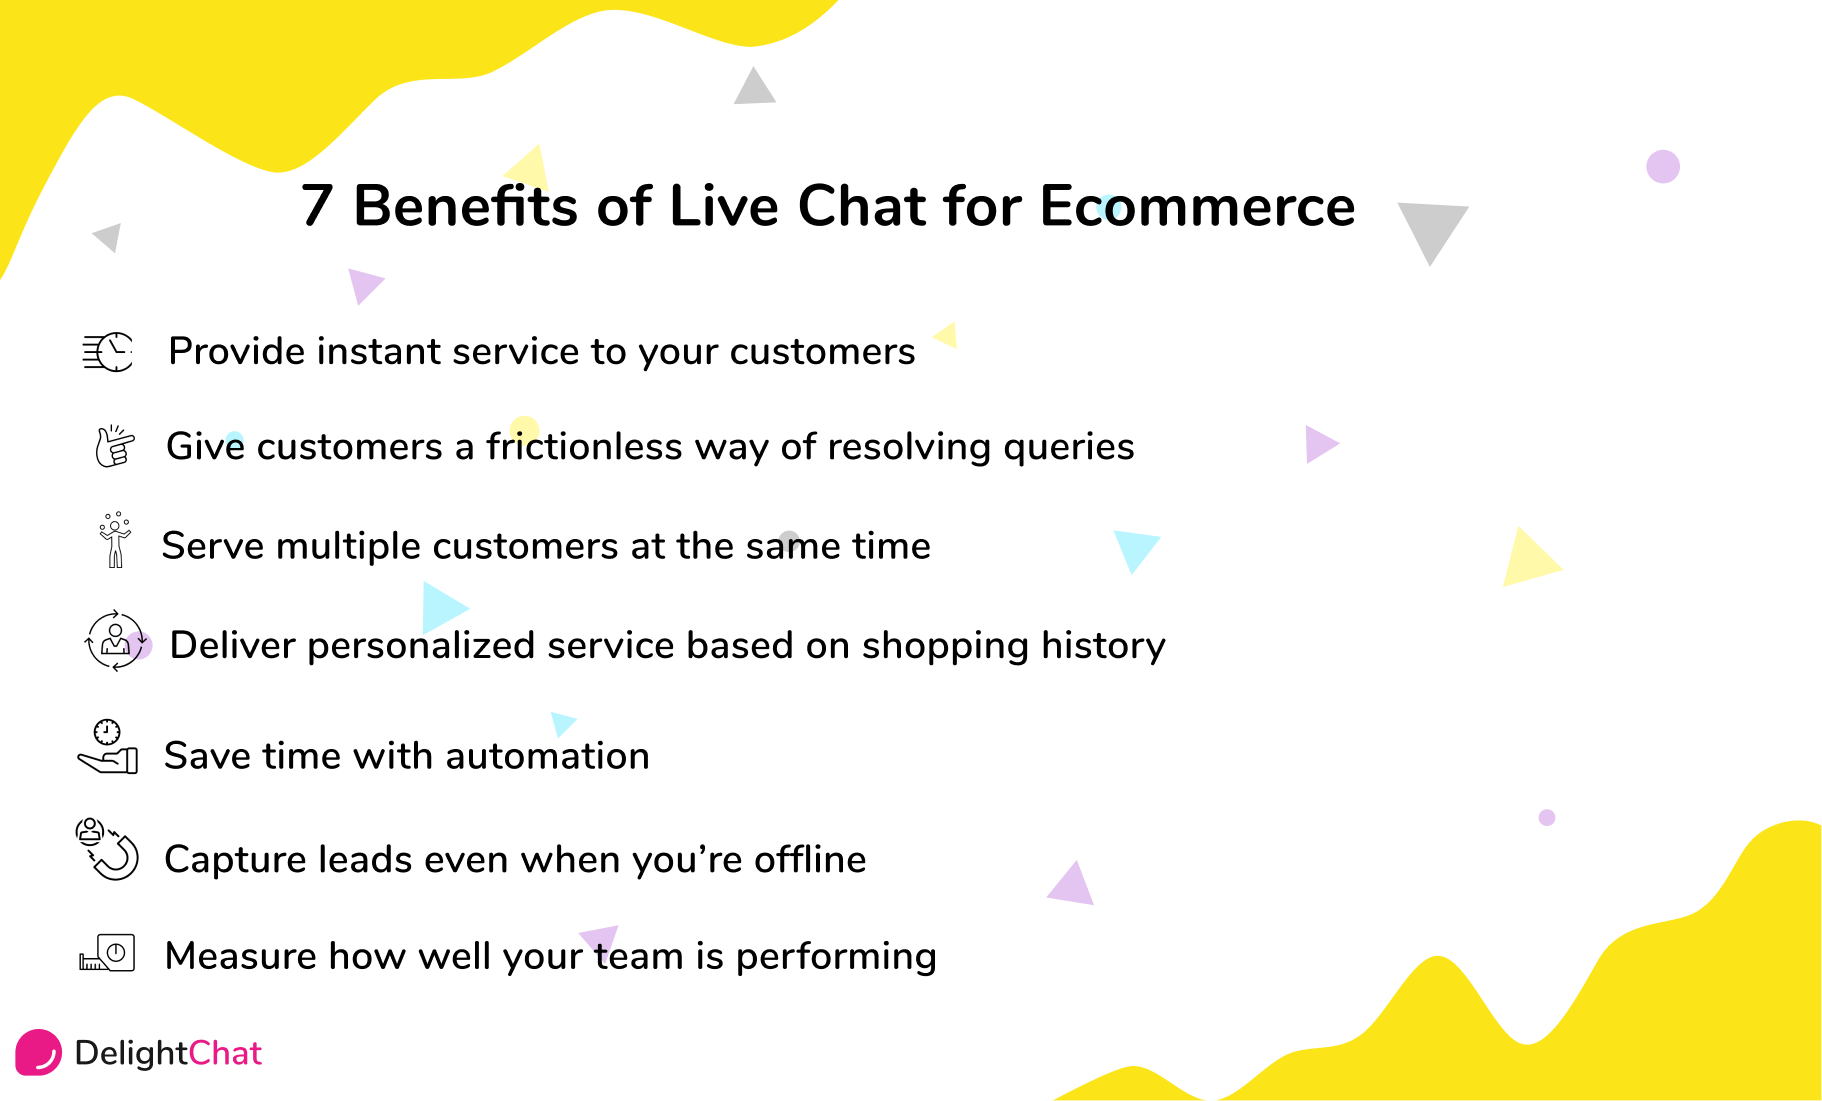 7 benefits of live chat for ecommerce infographic